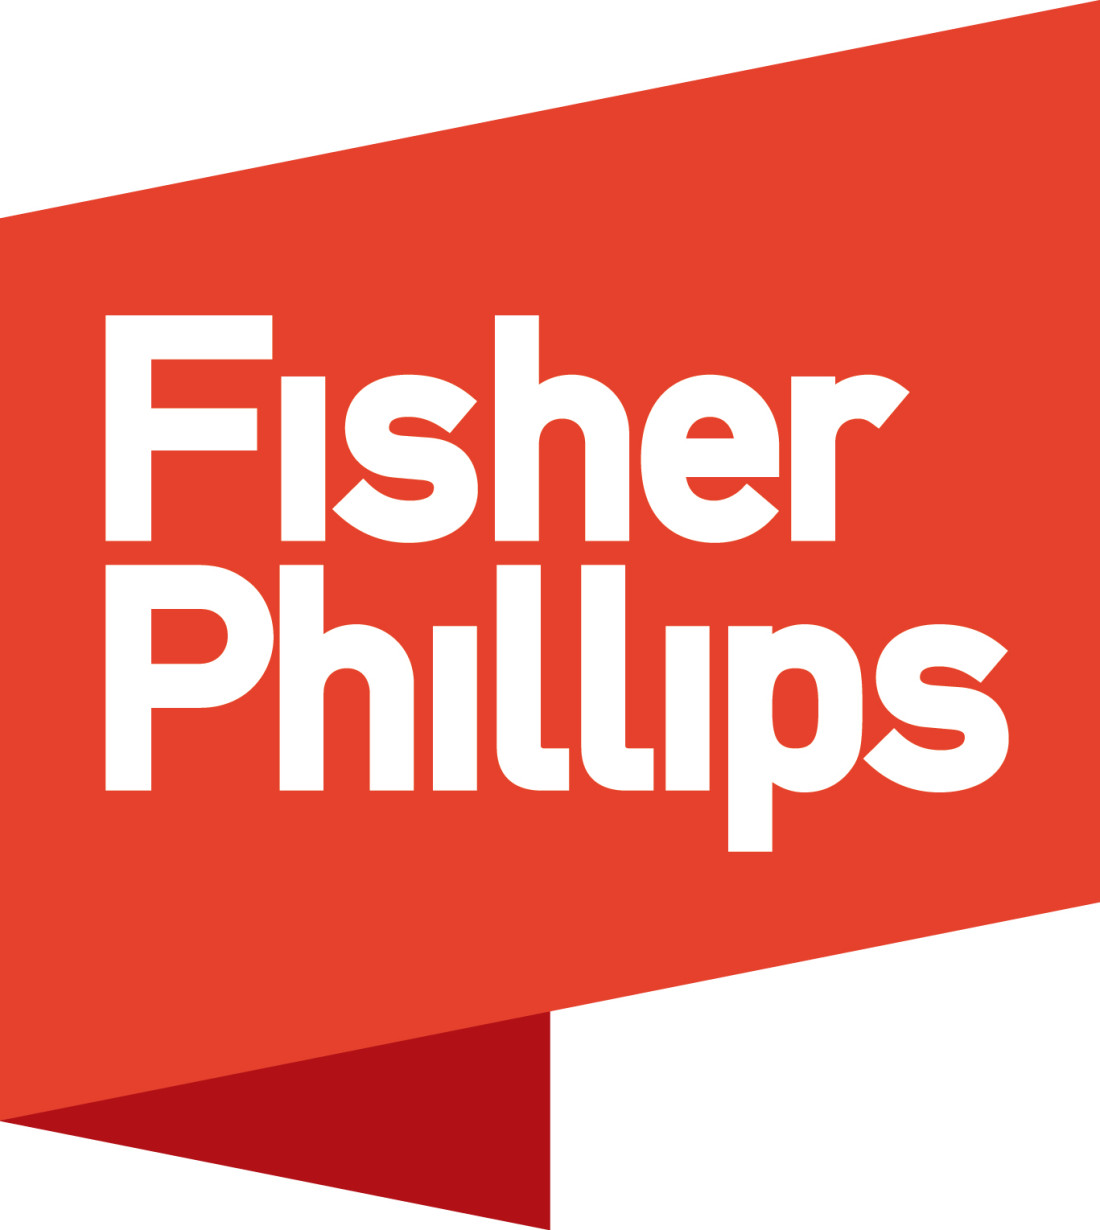 Fisher Phillips Logo